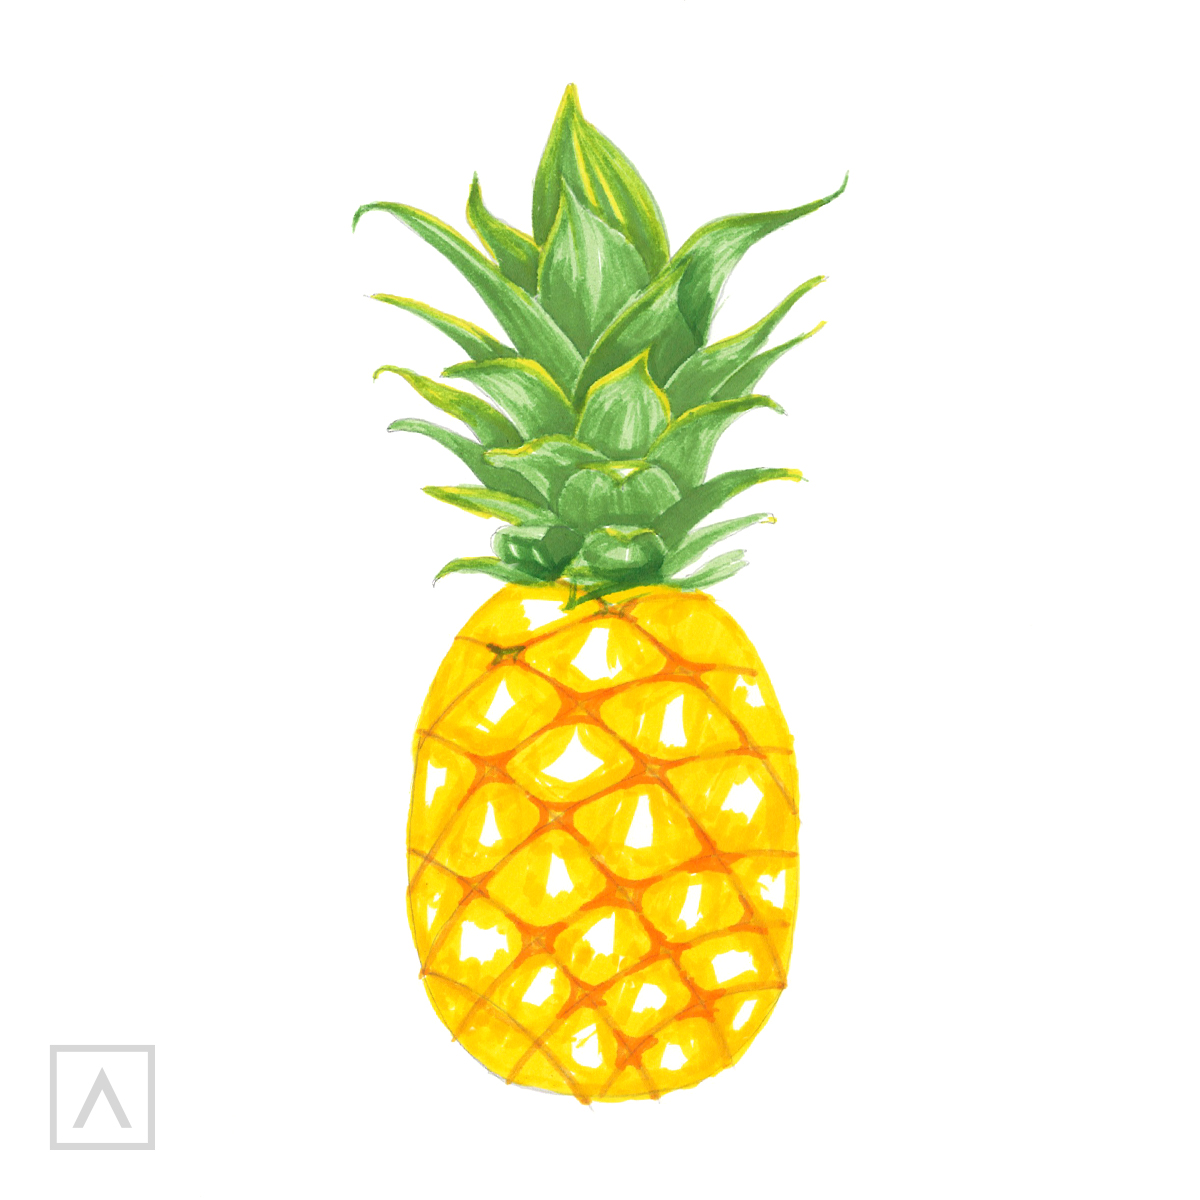 Pineapple drawing. Step 7